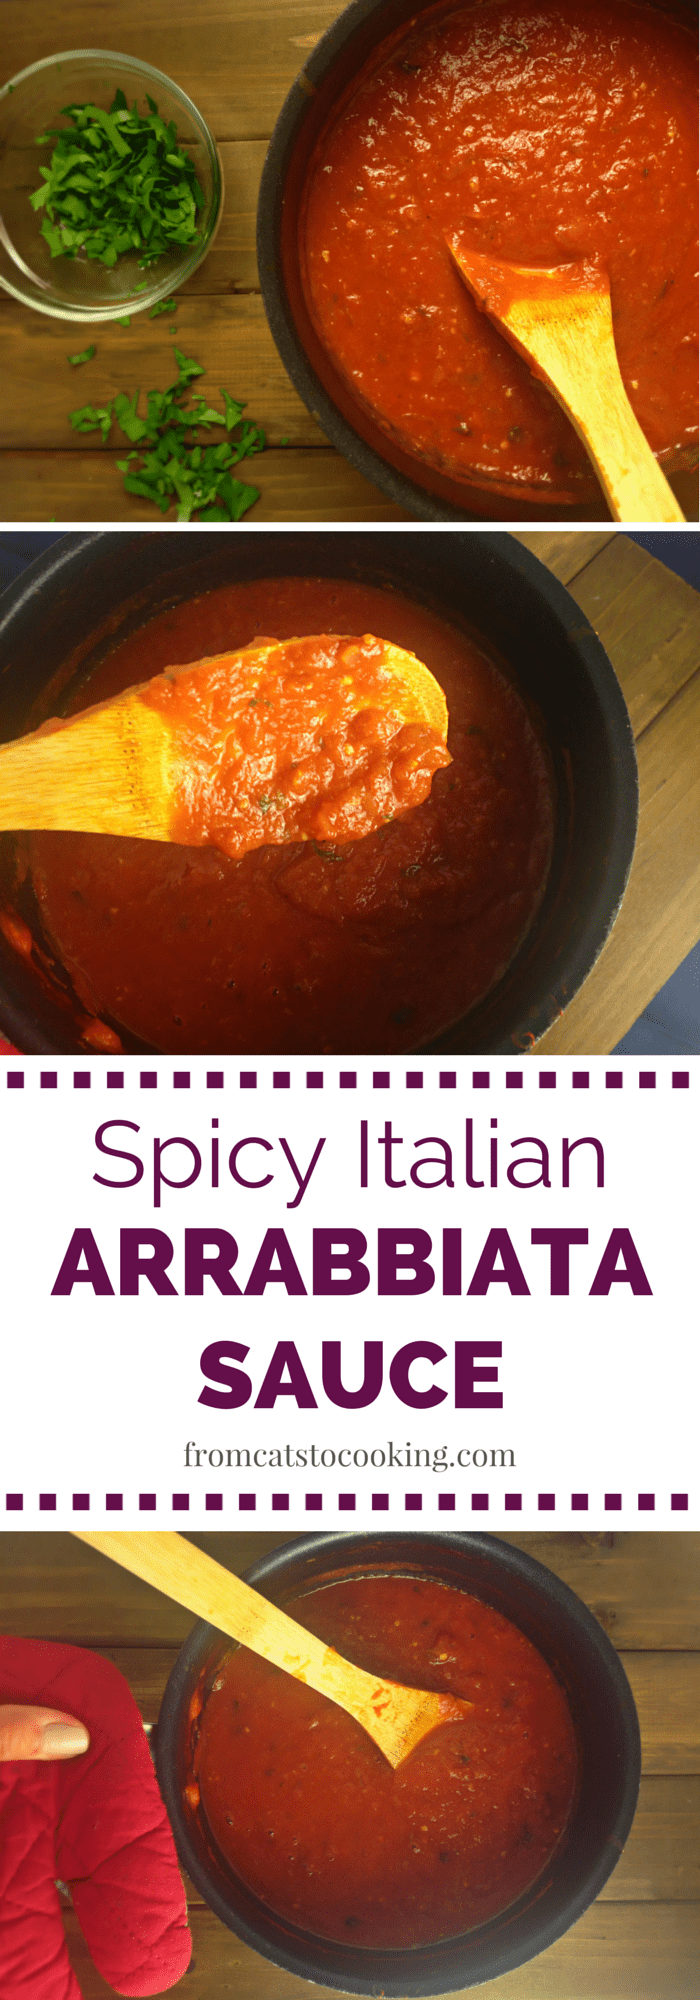 This Homemade Spicy Italian Arrabbiata Sauce recipe is super easy to make and extremely delicious. It's also gluten-free and free of any fillers and junk ingredients.